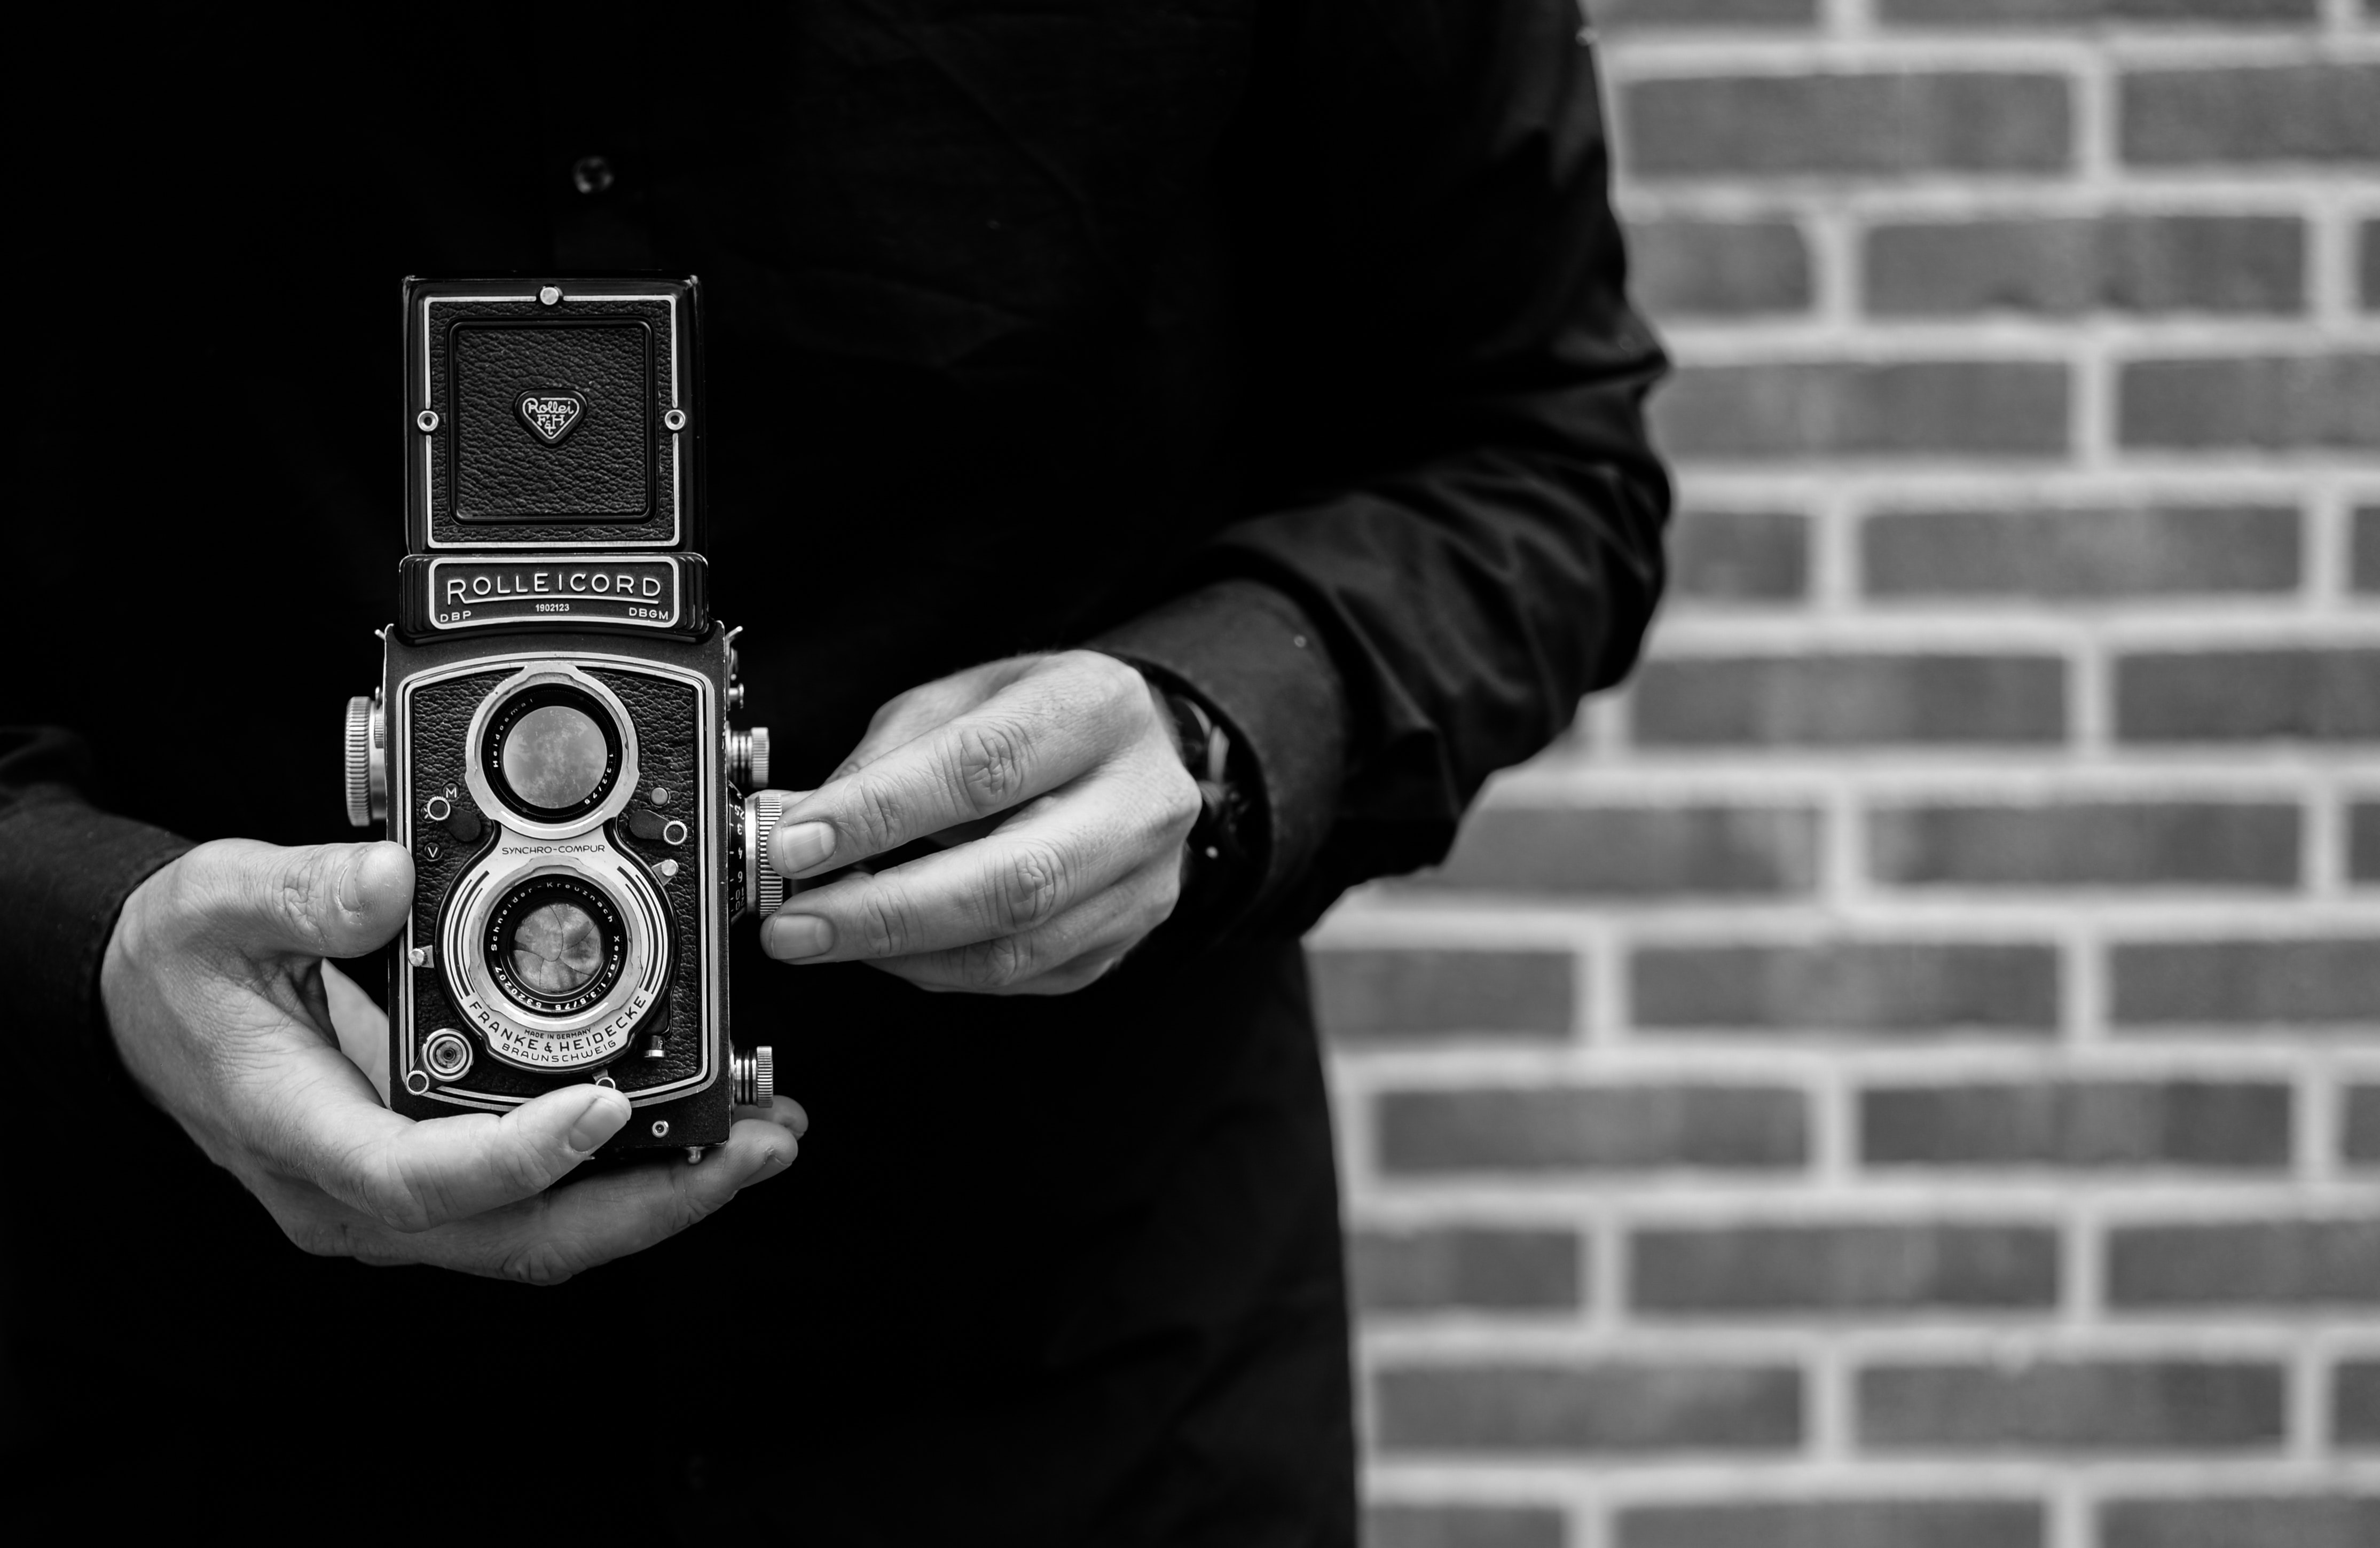 Grayscale Photo of Person Holding Vintage Camera · Free ...